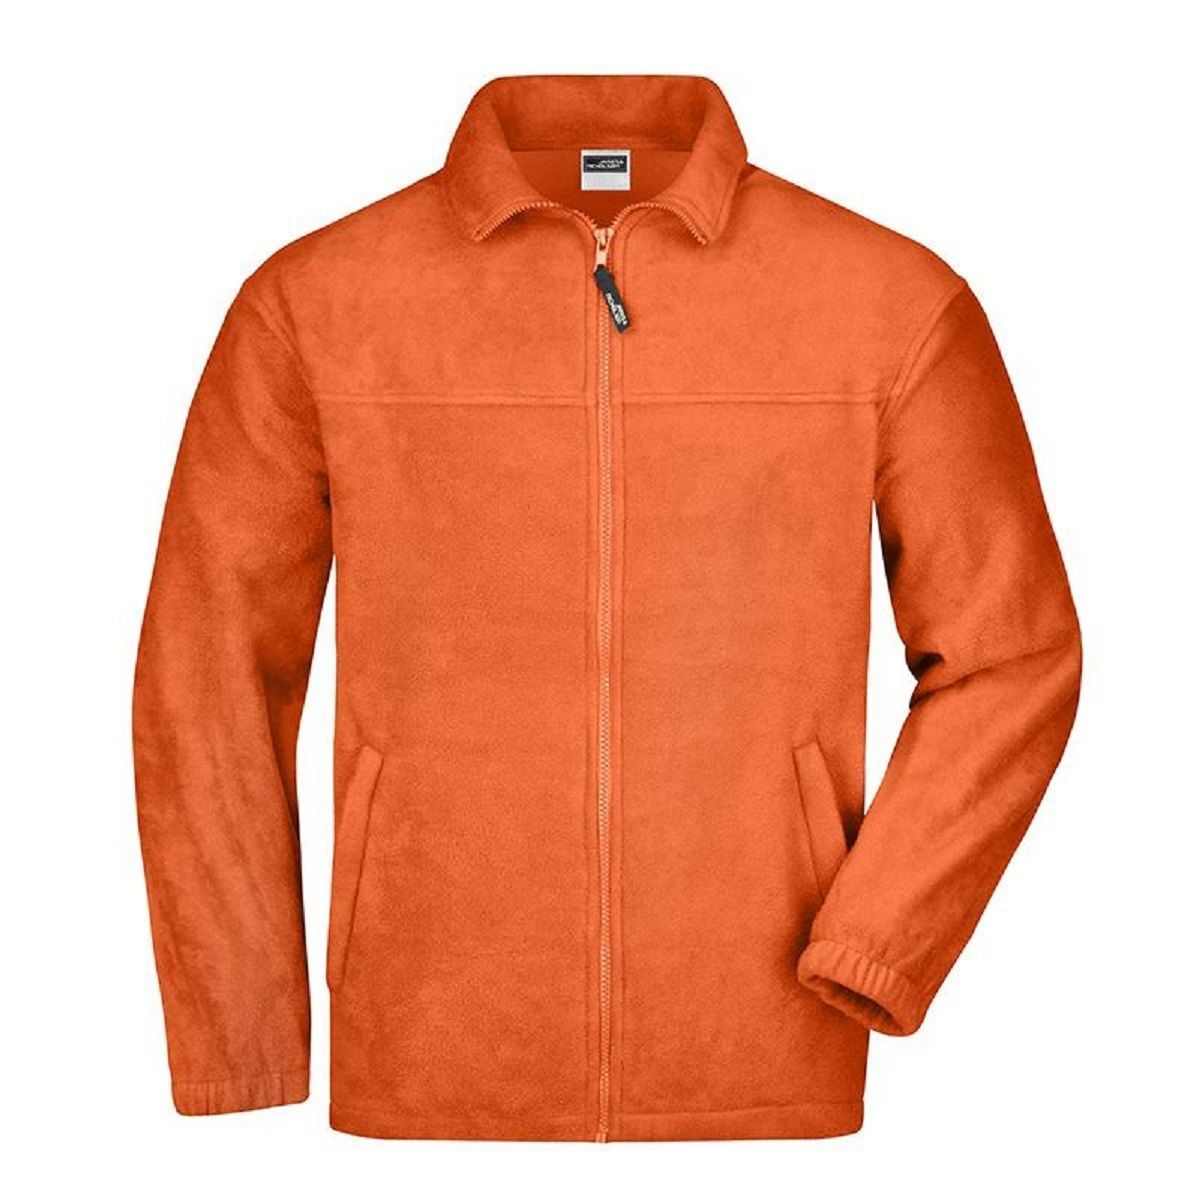 Veste polaire zippée homme - JN044 - orange